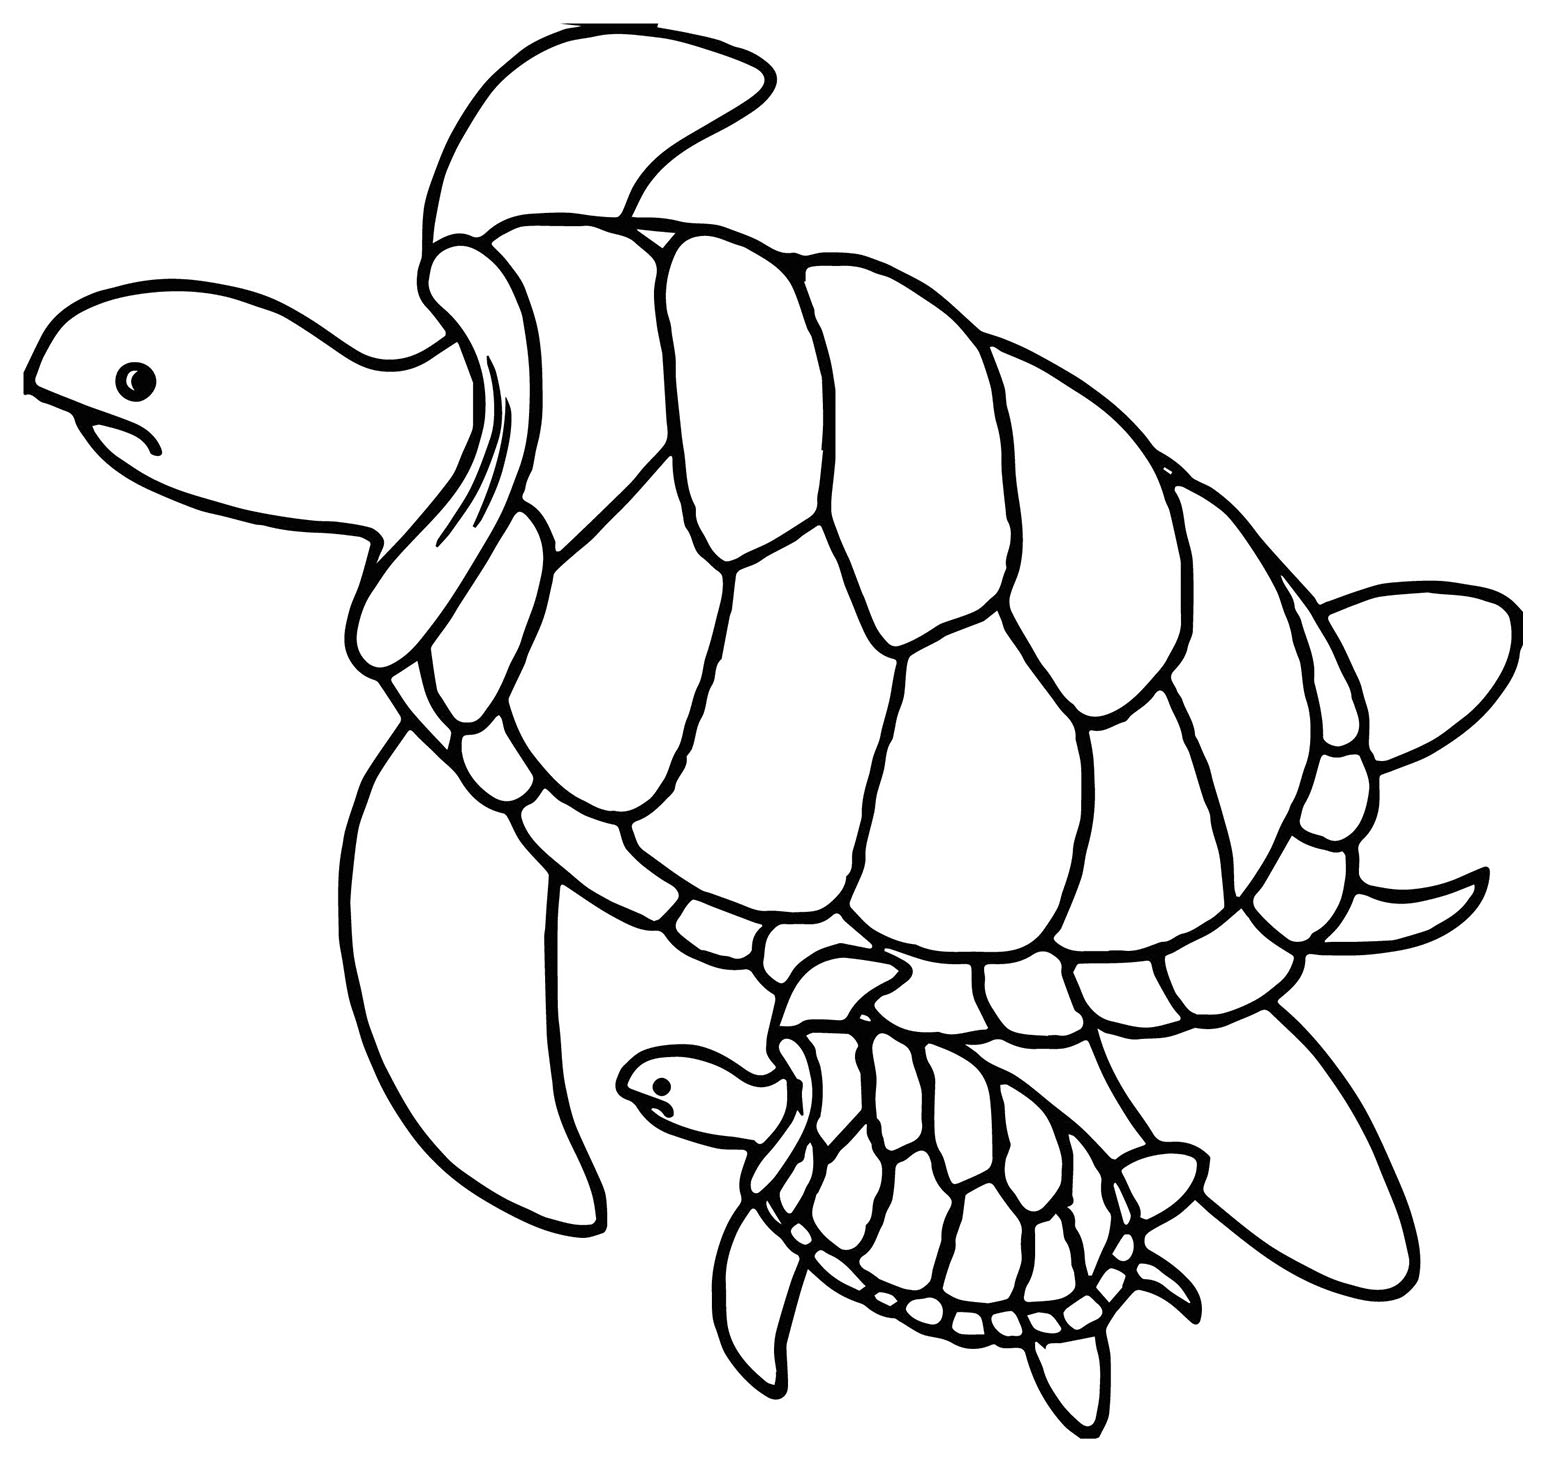 coloring picture turtle sea turtle coloring pages getcoloringpagescom picture turtle coloring